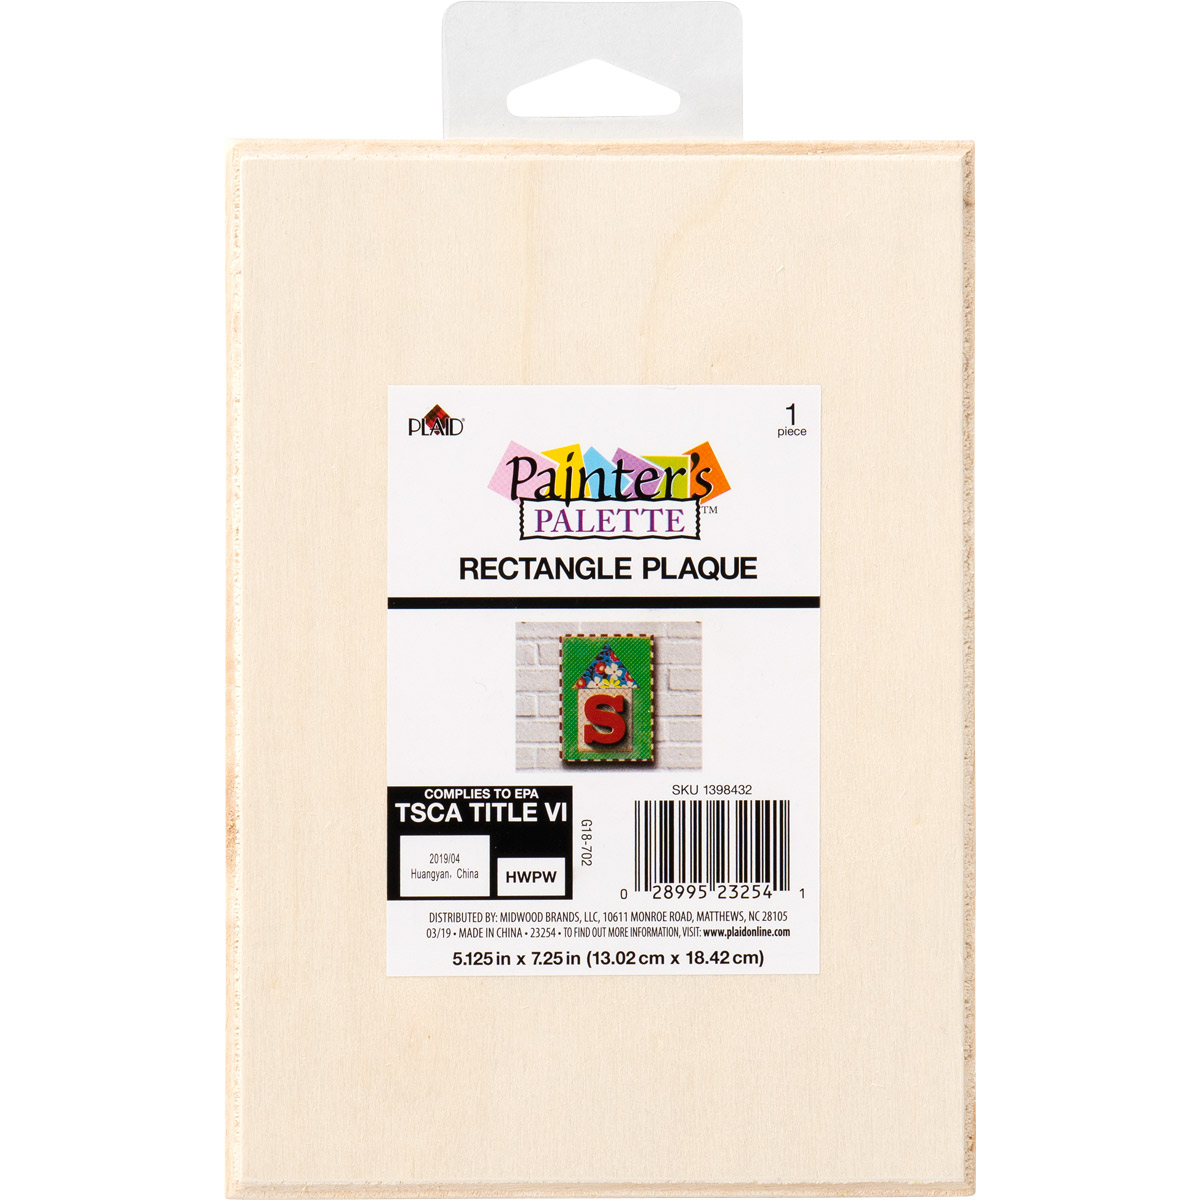 Plaid ® Painter's Palette™ Wood Value Plaque - Rectangle, 5 x 7